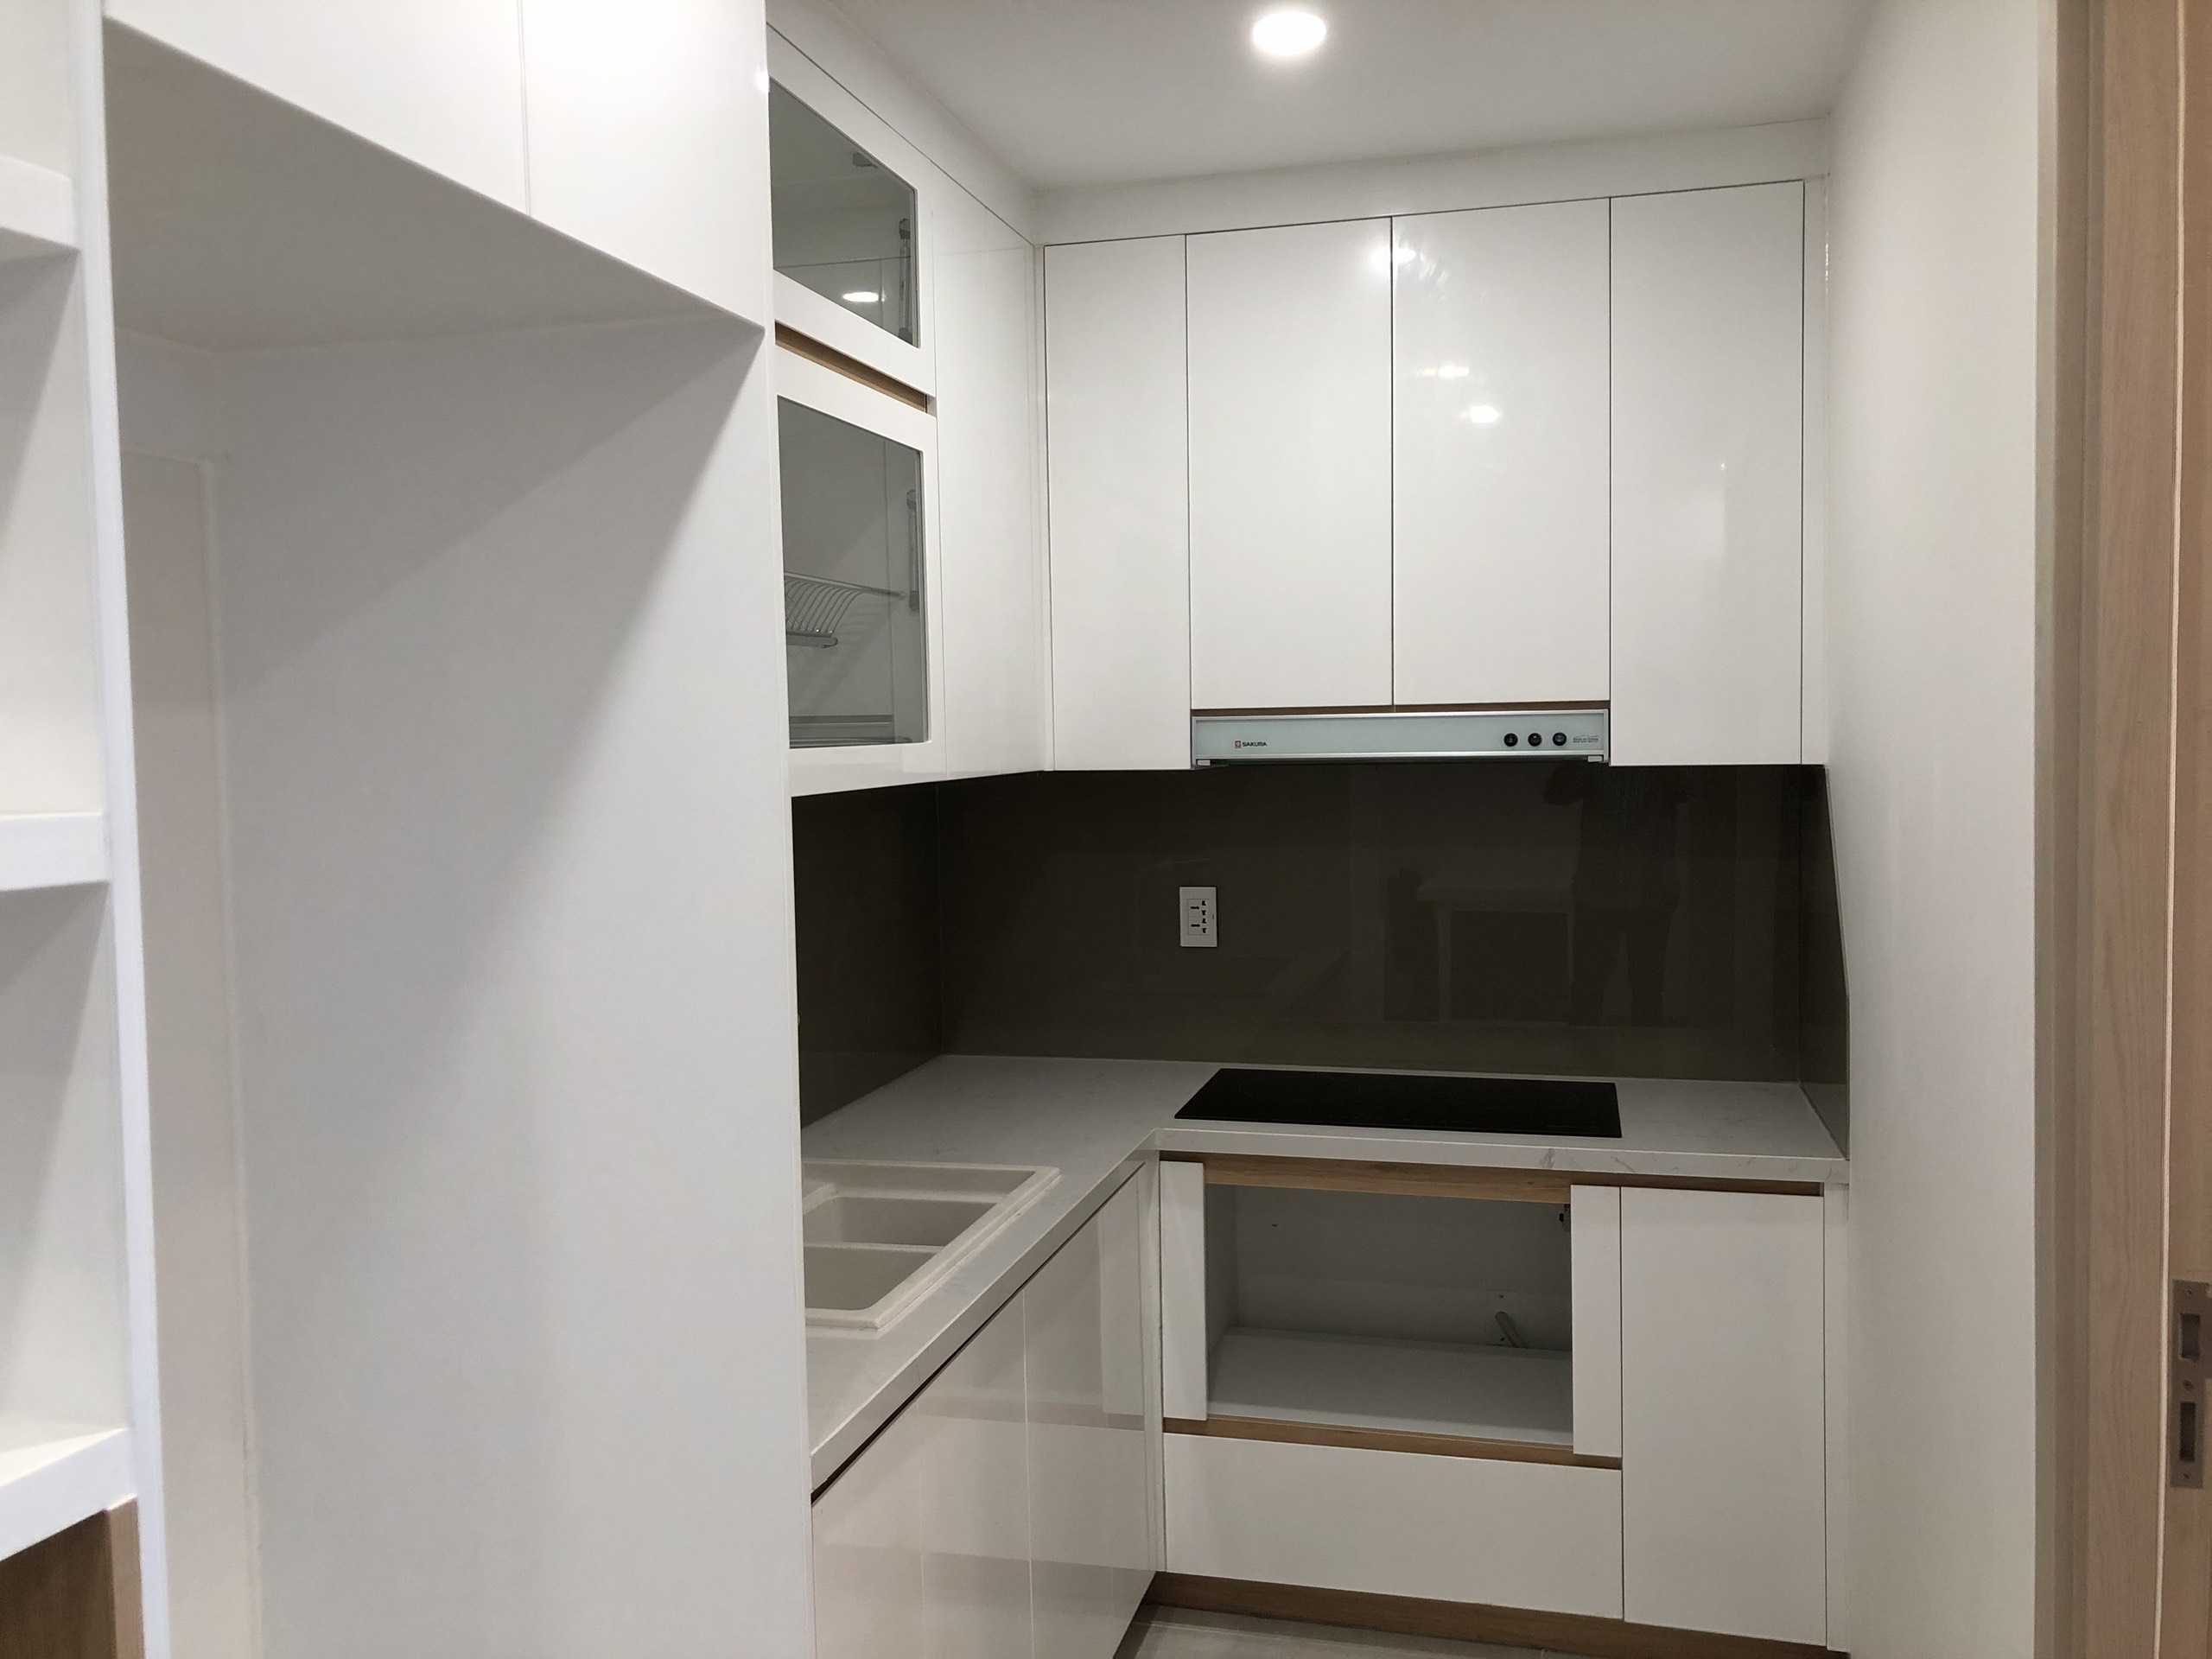 apartment for rent in district 2 hcmc new city apartment for rent in district 2 hcmc D224563 (3)